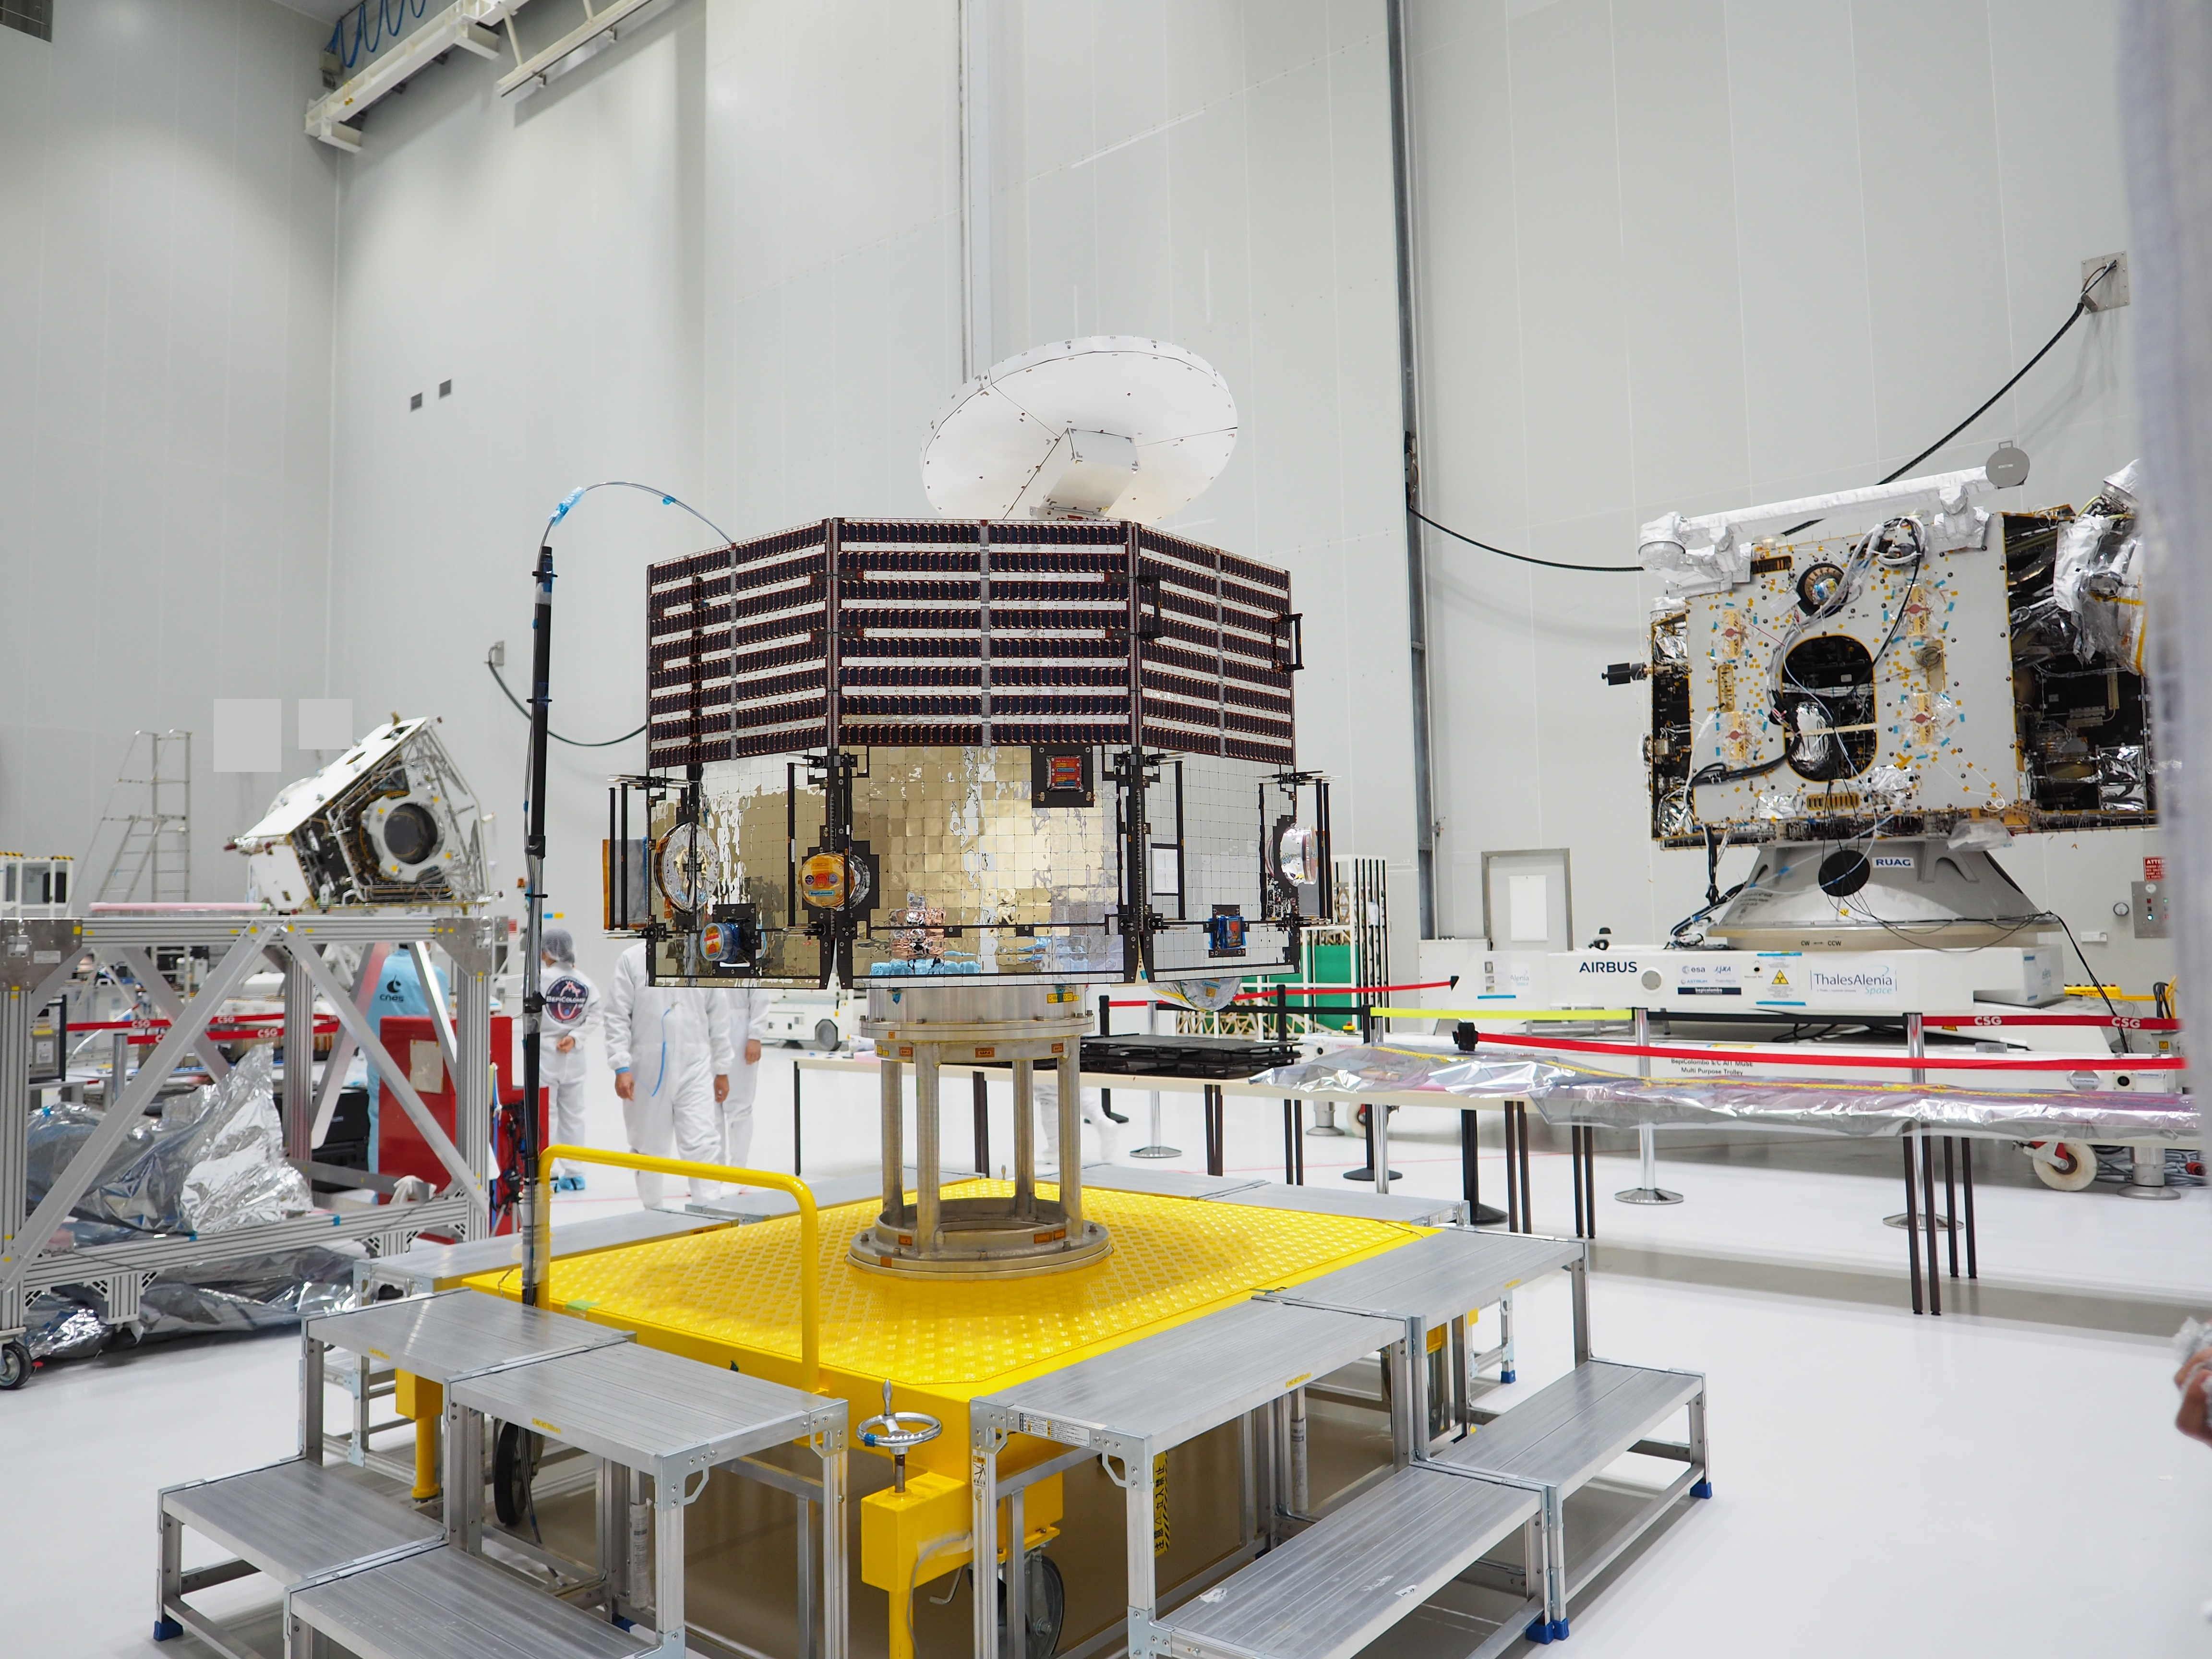 1567214577389-BepiColombo_unpacked_at_the_Spaceport_20180508.jpg